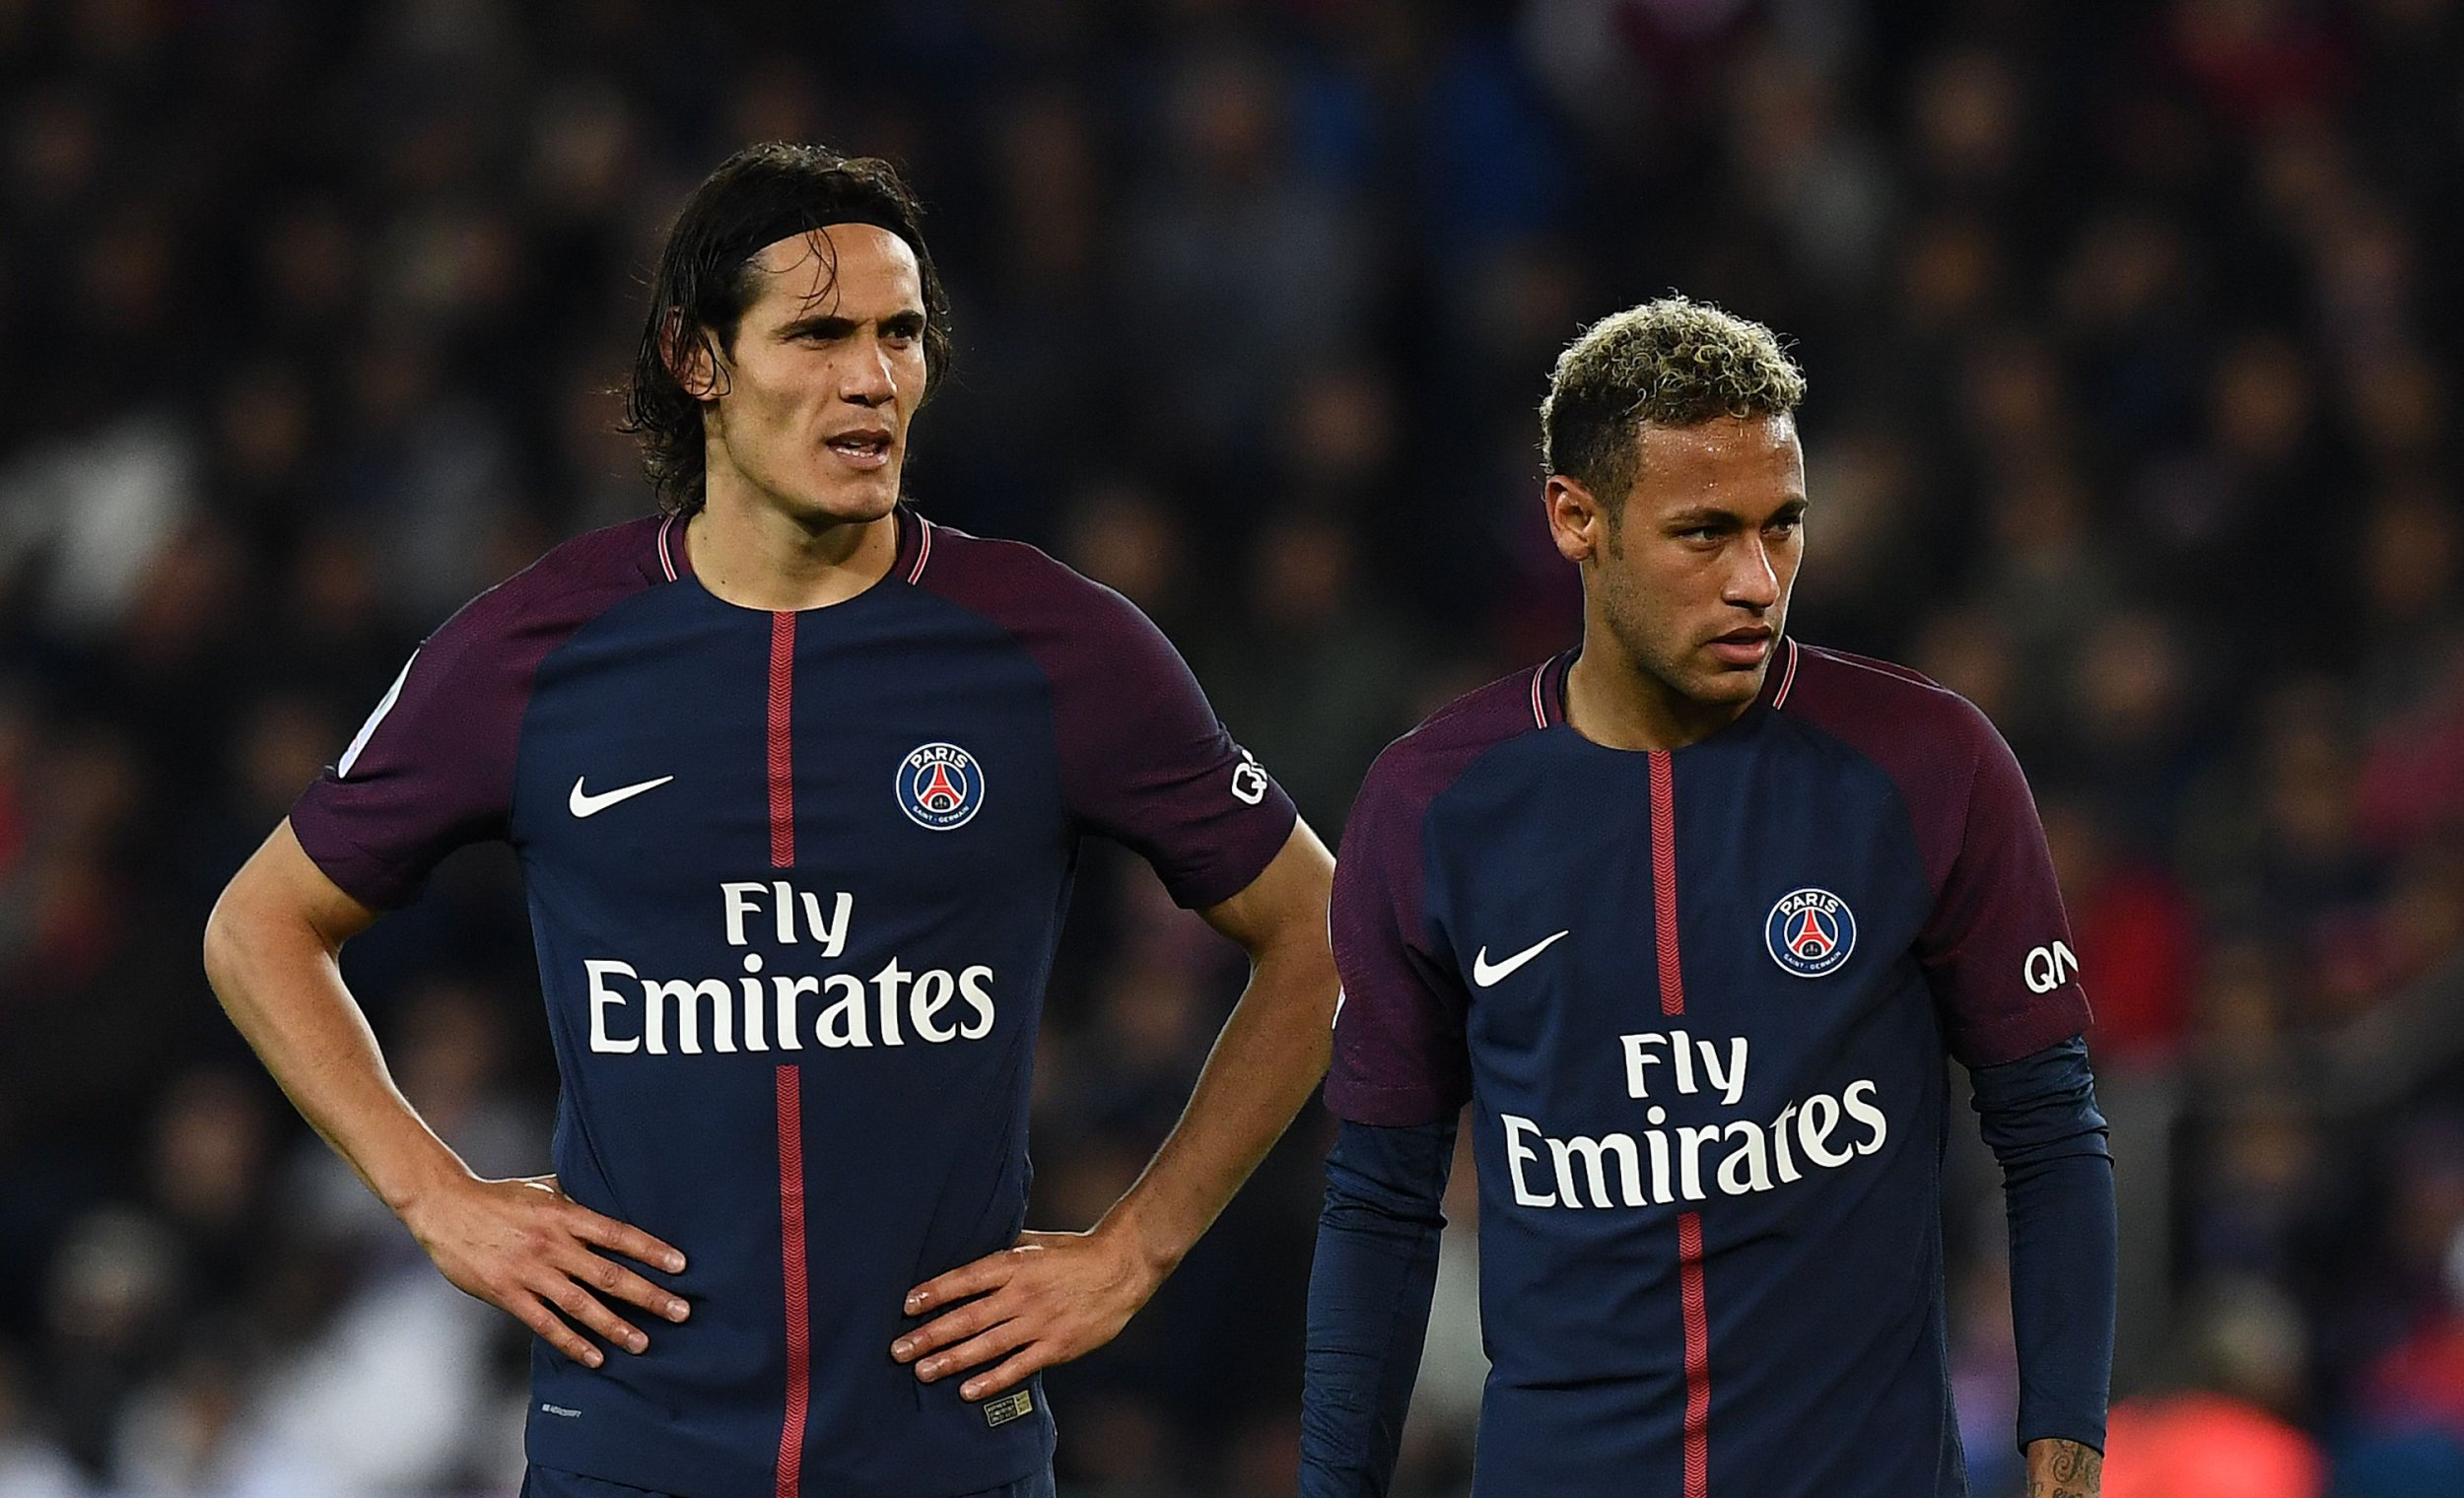 Neymar and Edinson Cavani had to be separated by Thiago Silva as row continued in changing room